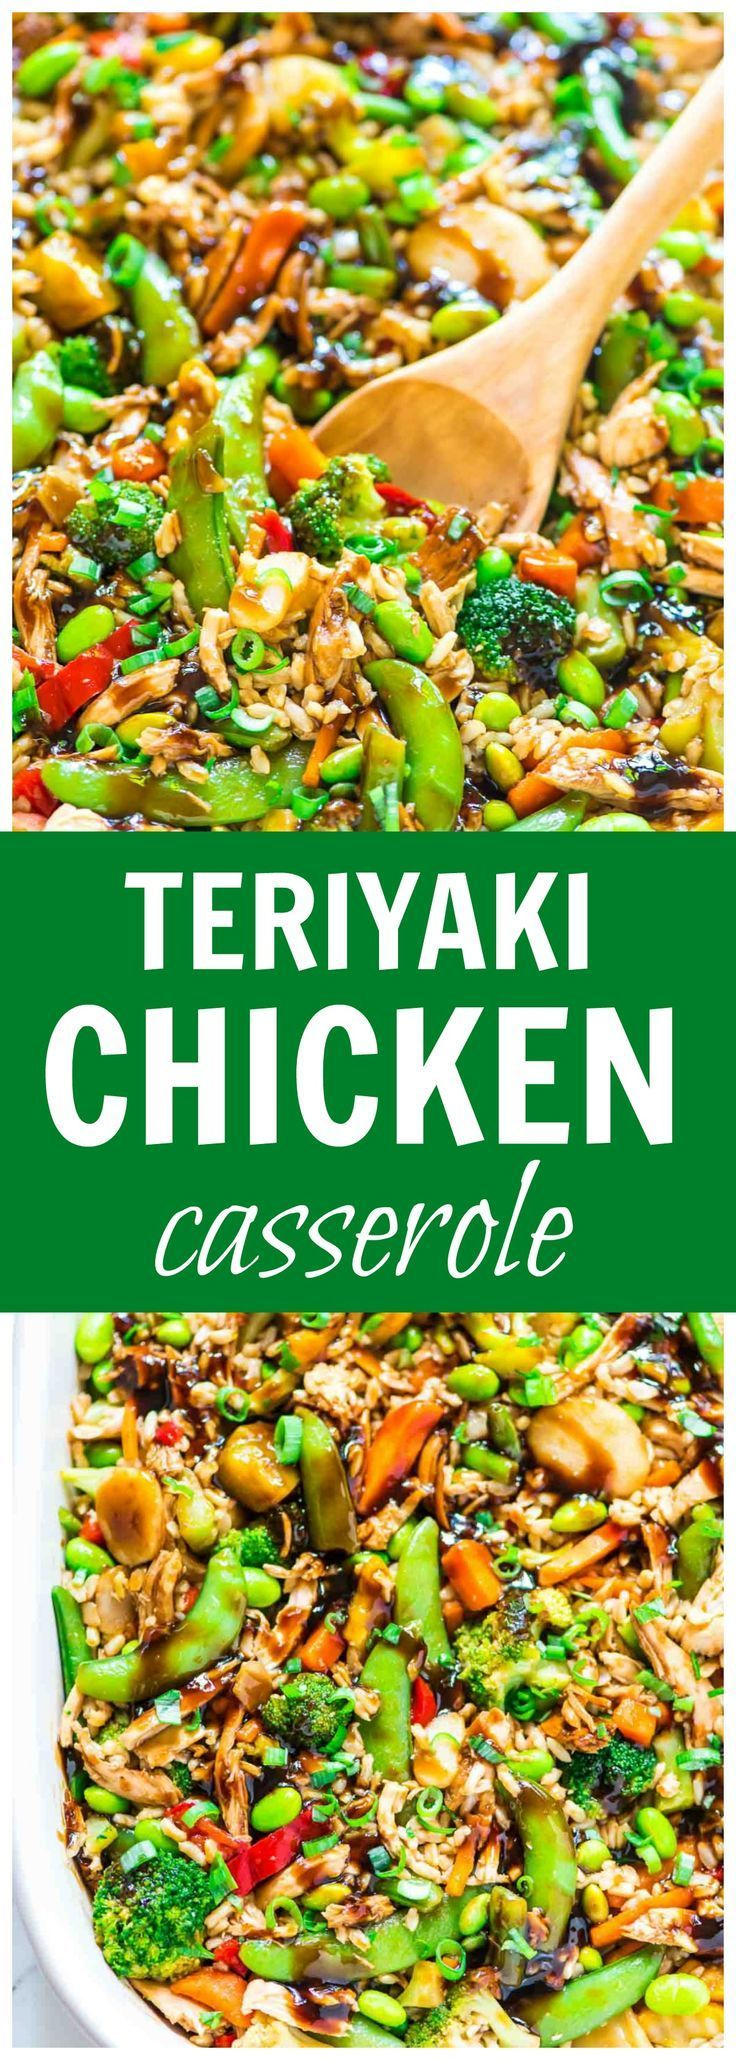 Teriyaki Chicken Casserole recipe — a DELICIOUS and EASY all-in-one meal with juicy chicken, crispy veggies, brown rice, and an addictive sticky teriyaki sauce. Great recipe for busy weeknights! Recipe at http://wellplated.com @Well Plated